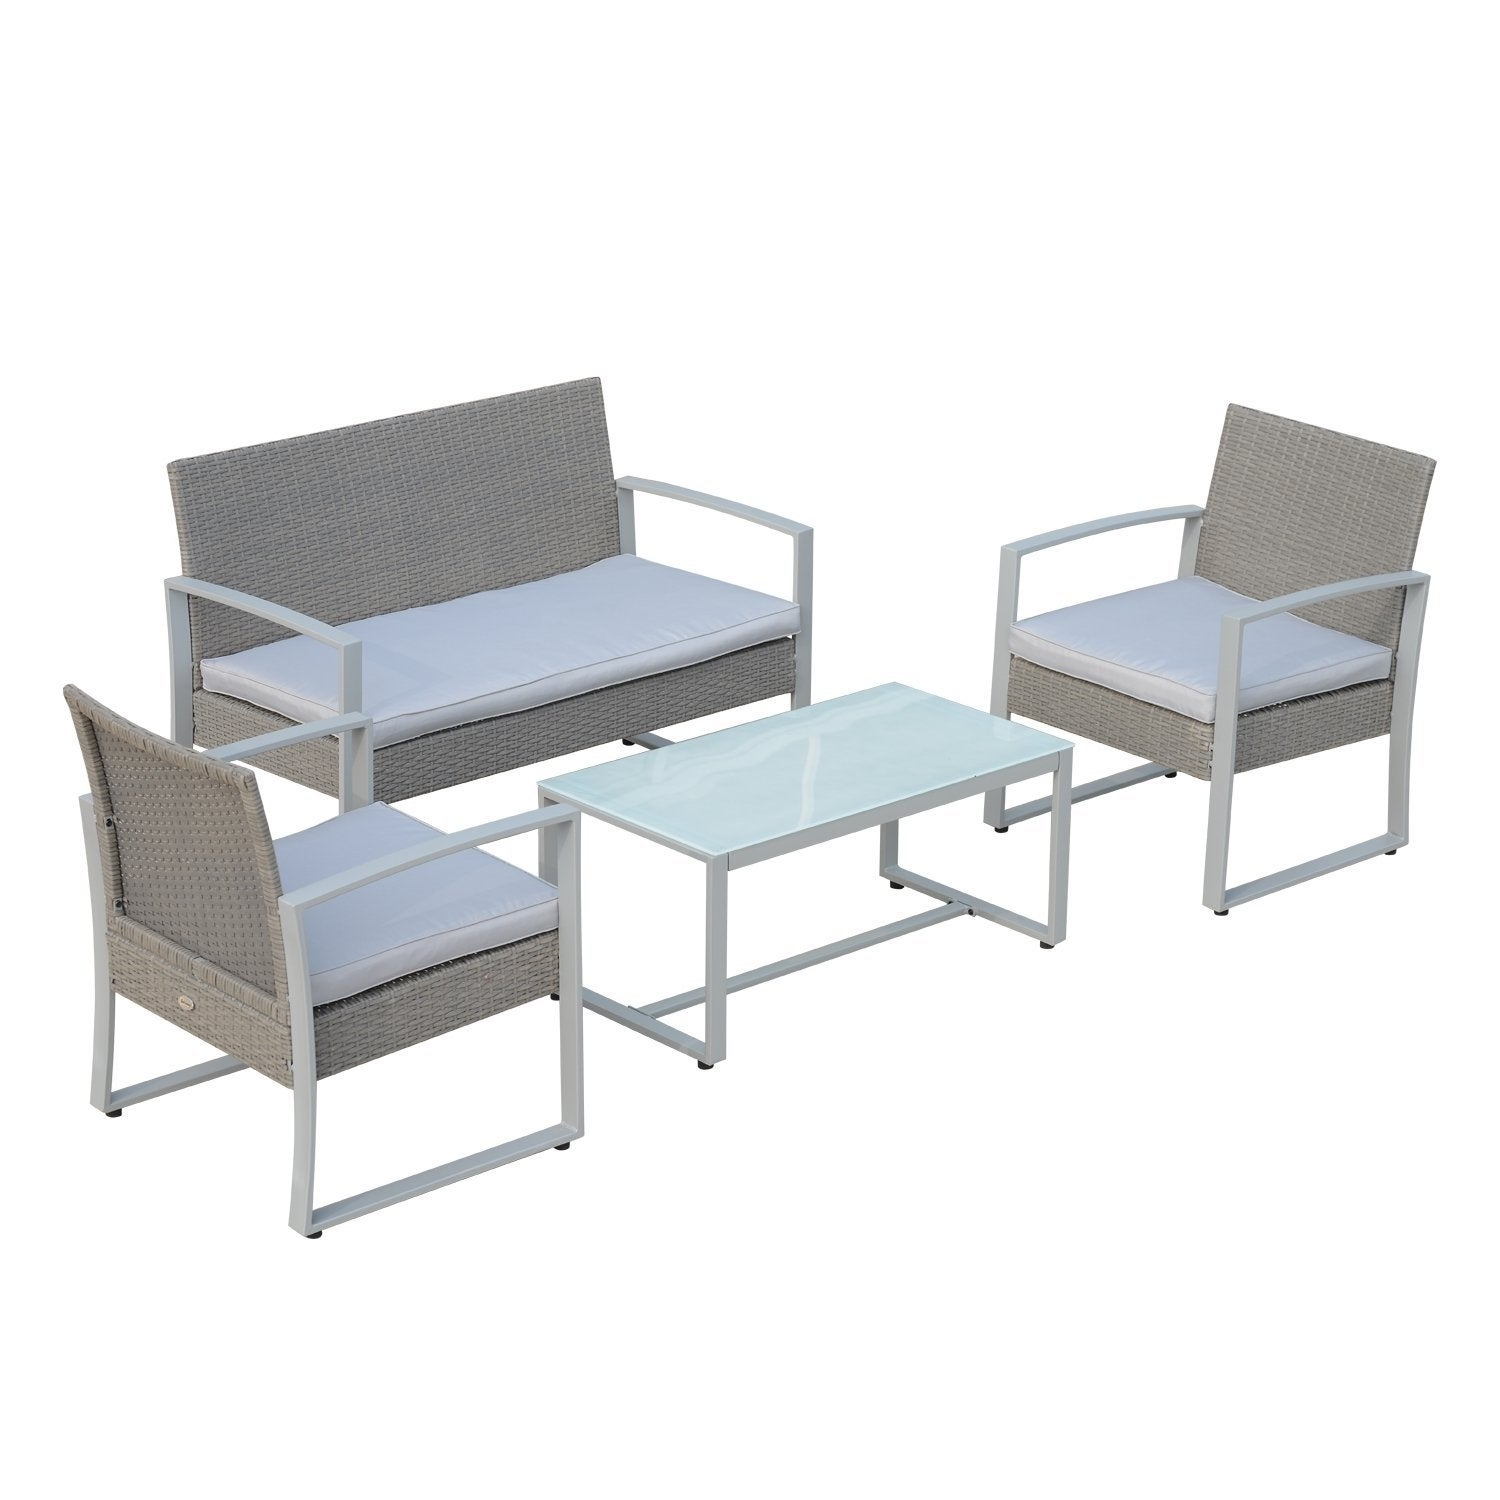 Tremendous Outsunny Grey Rattan Wicker 4 Piece Cushioned Outdoor Chair And Loveseat Furniture Set Lamtechconsult Wood Chair Design Ideas Lamtechconsultcom